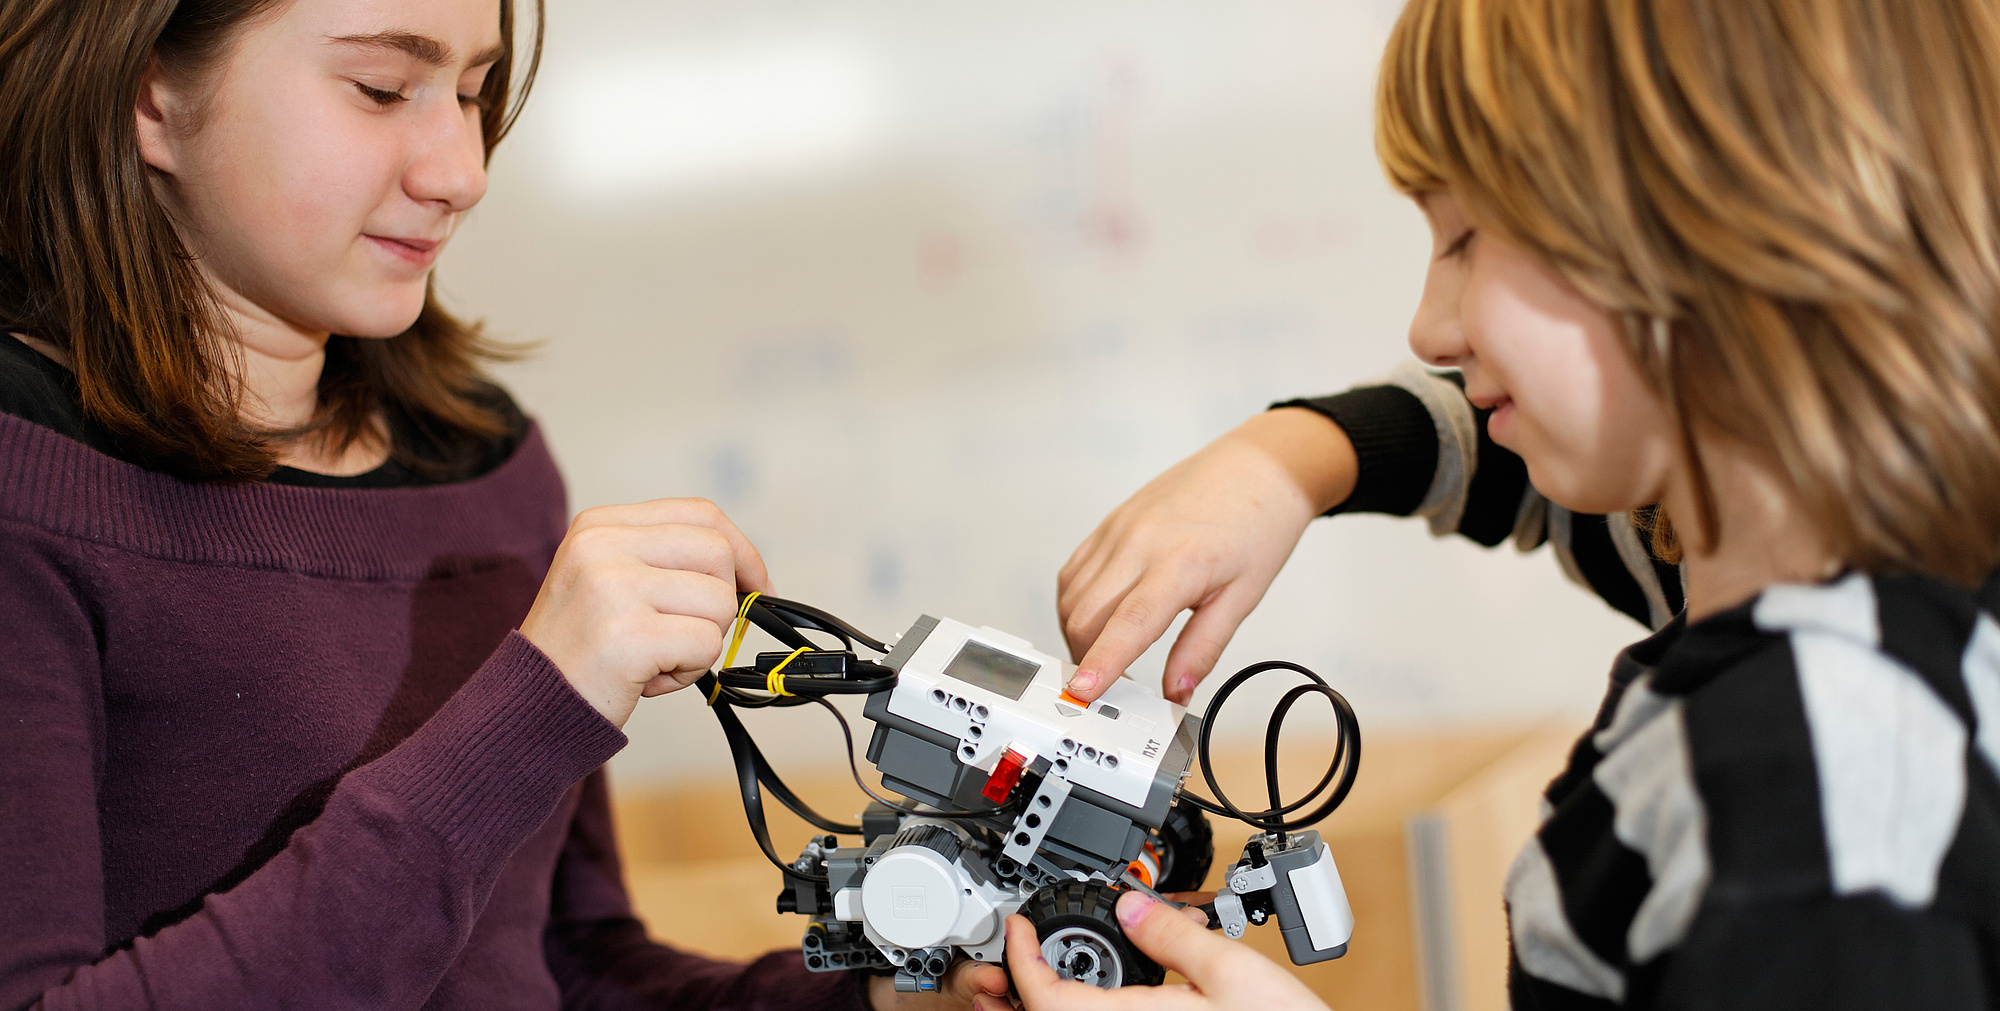 Two kids working on a robot.